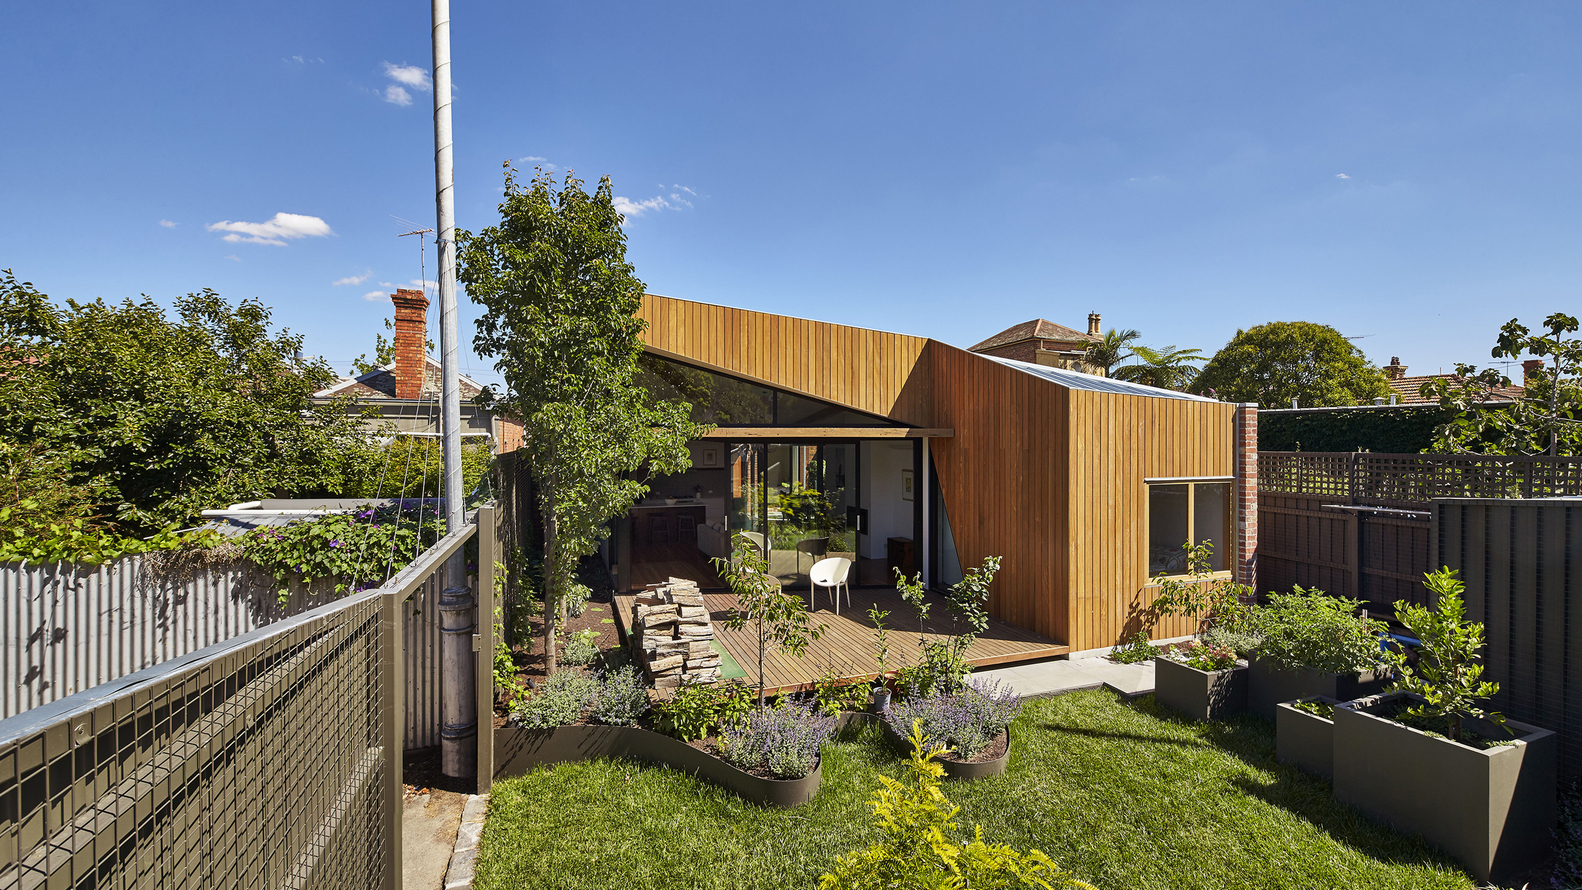 Diagonal House by Simon Whibley Architecture and Antarctica (via Lunchbox Architect)